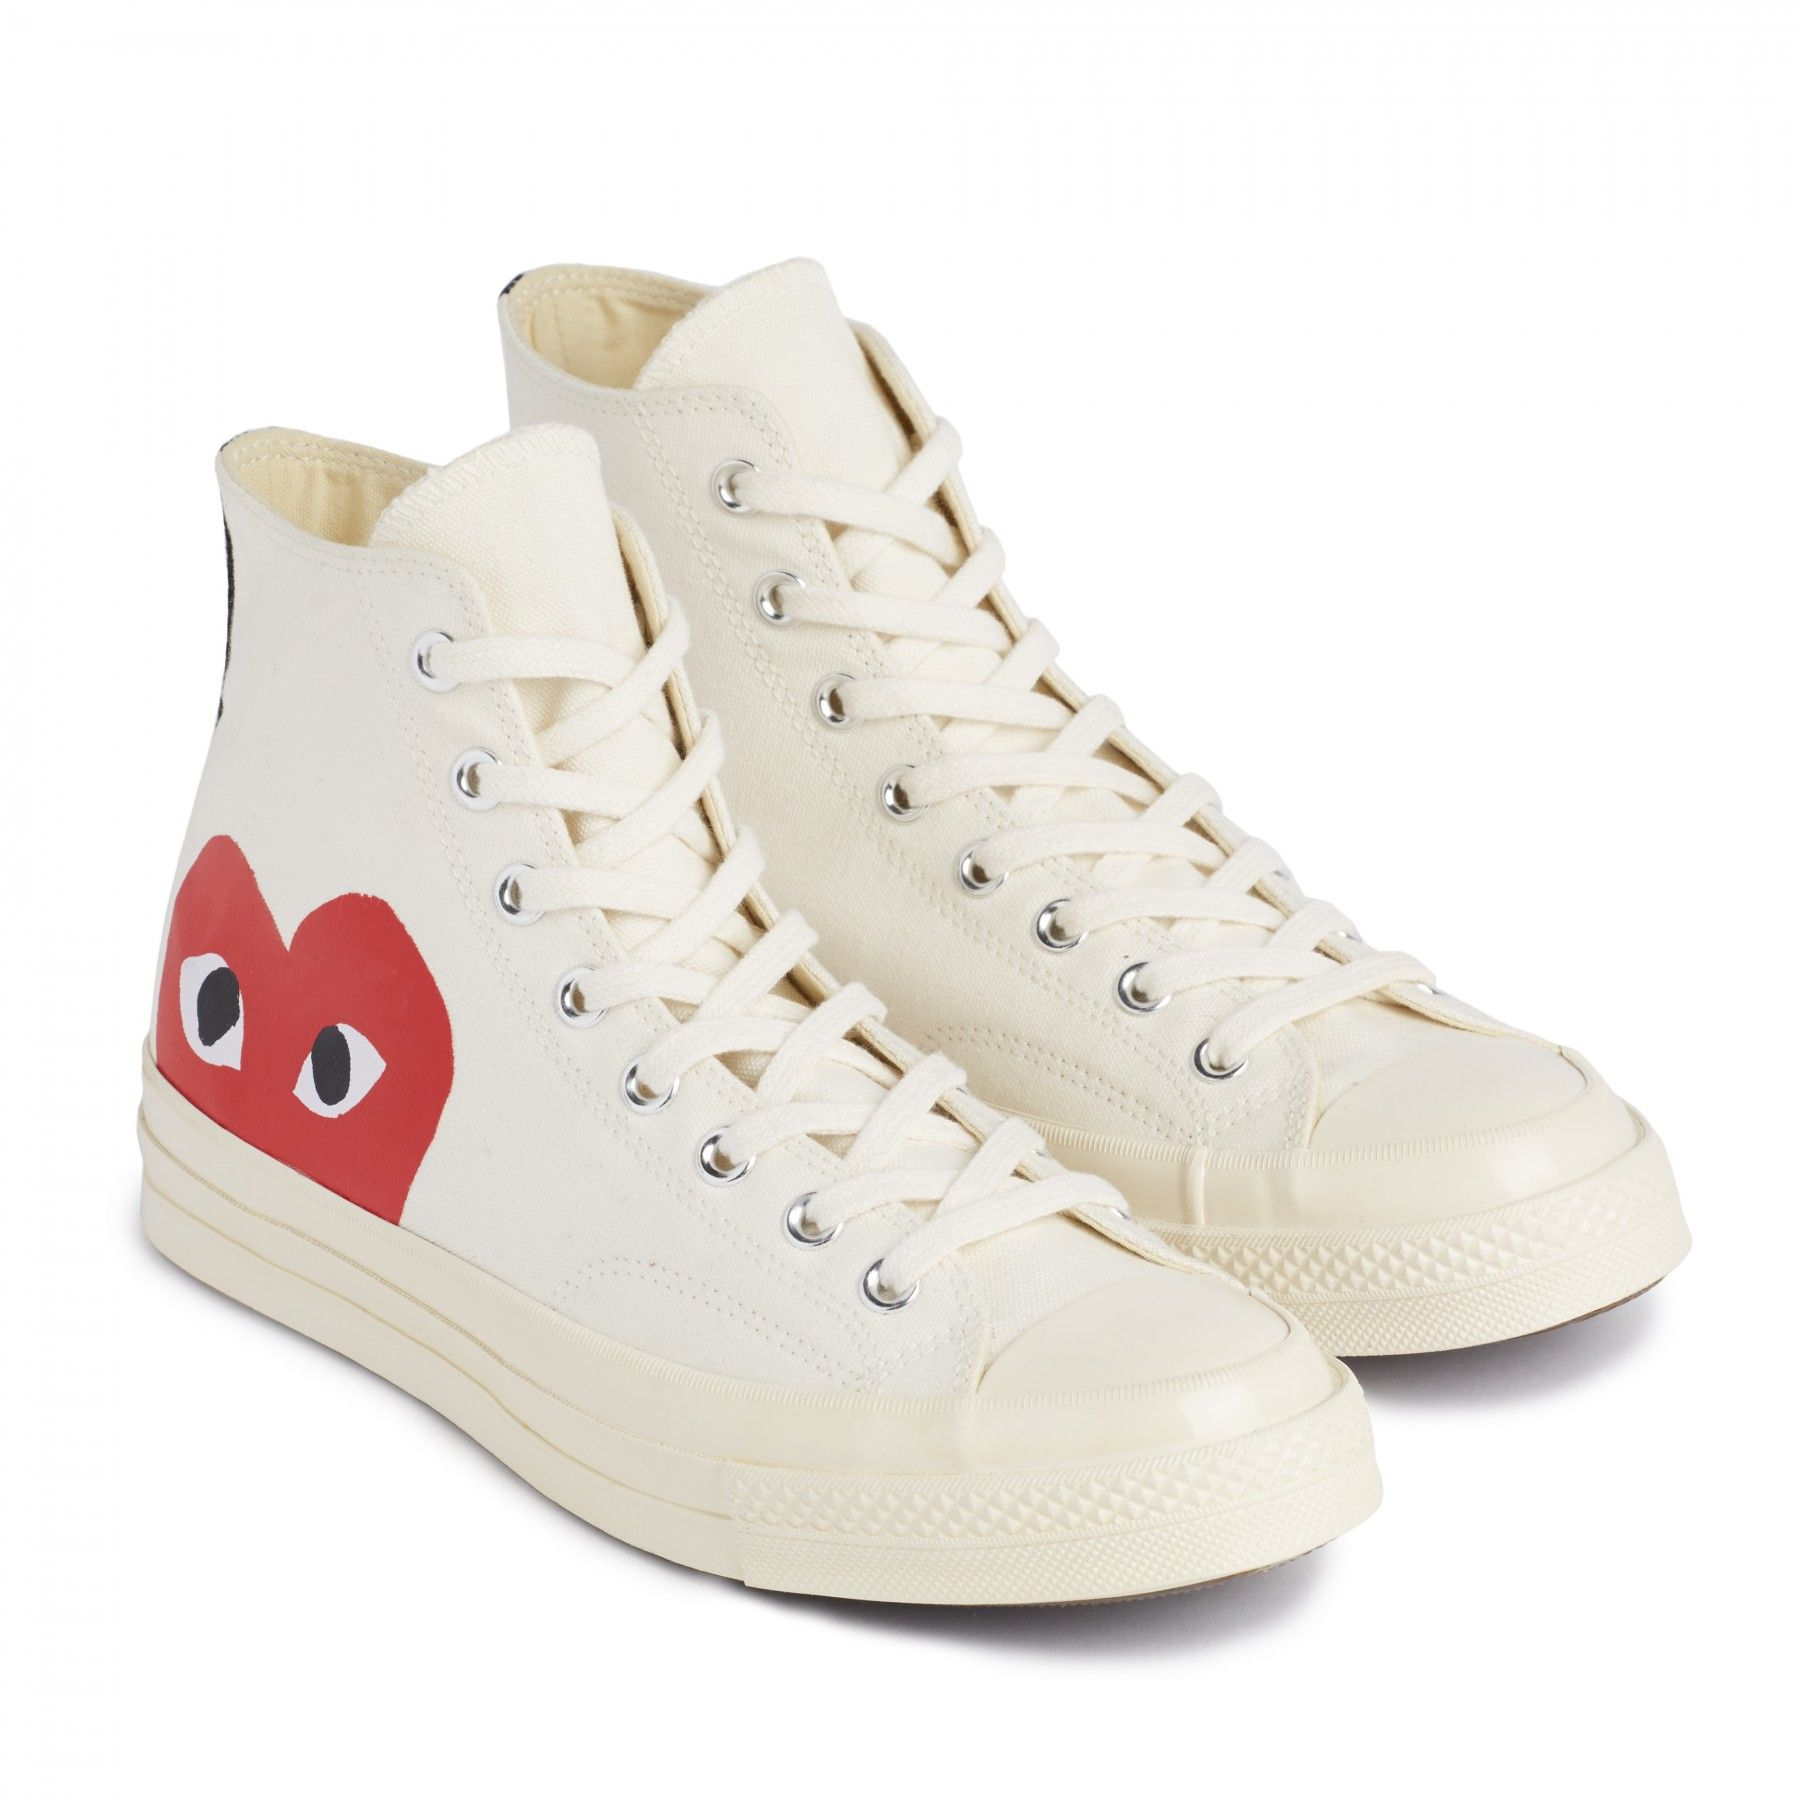 converse play cdg us